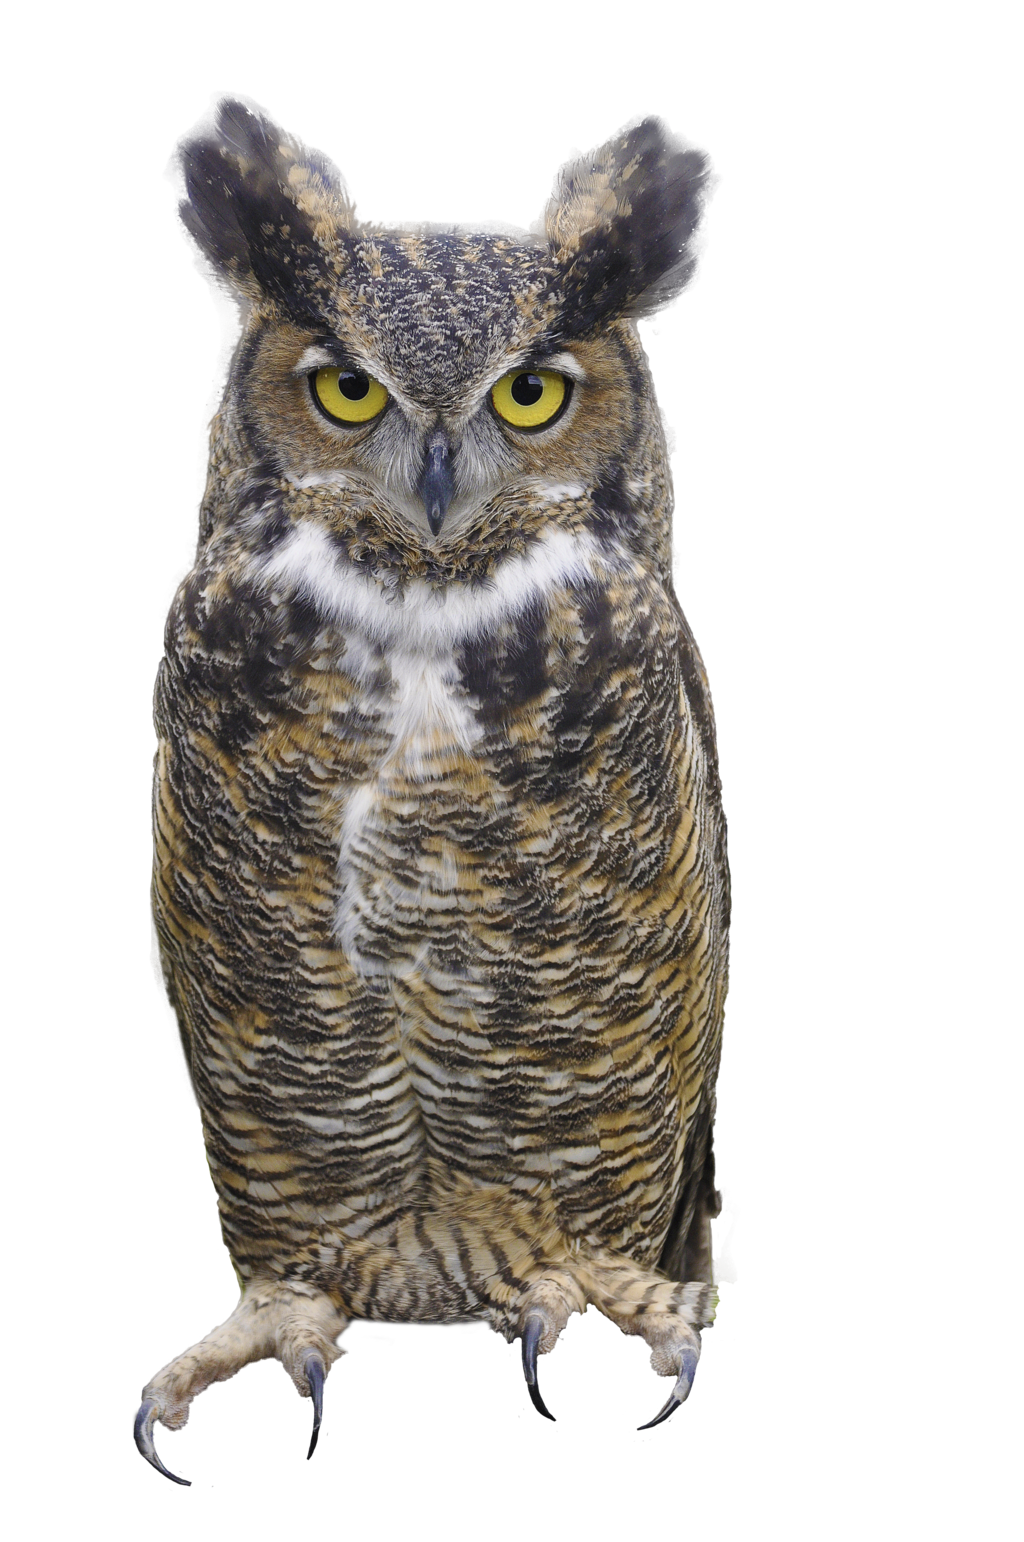 Owl PNG - 15887